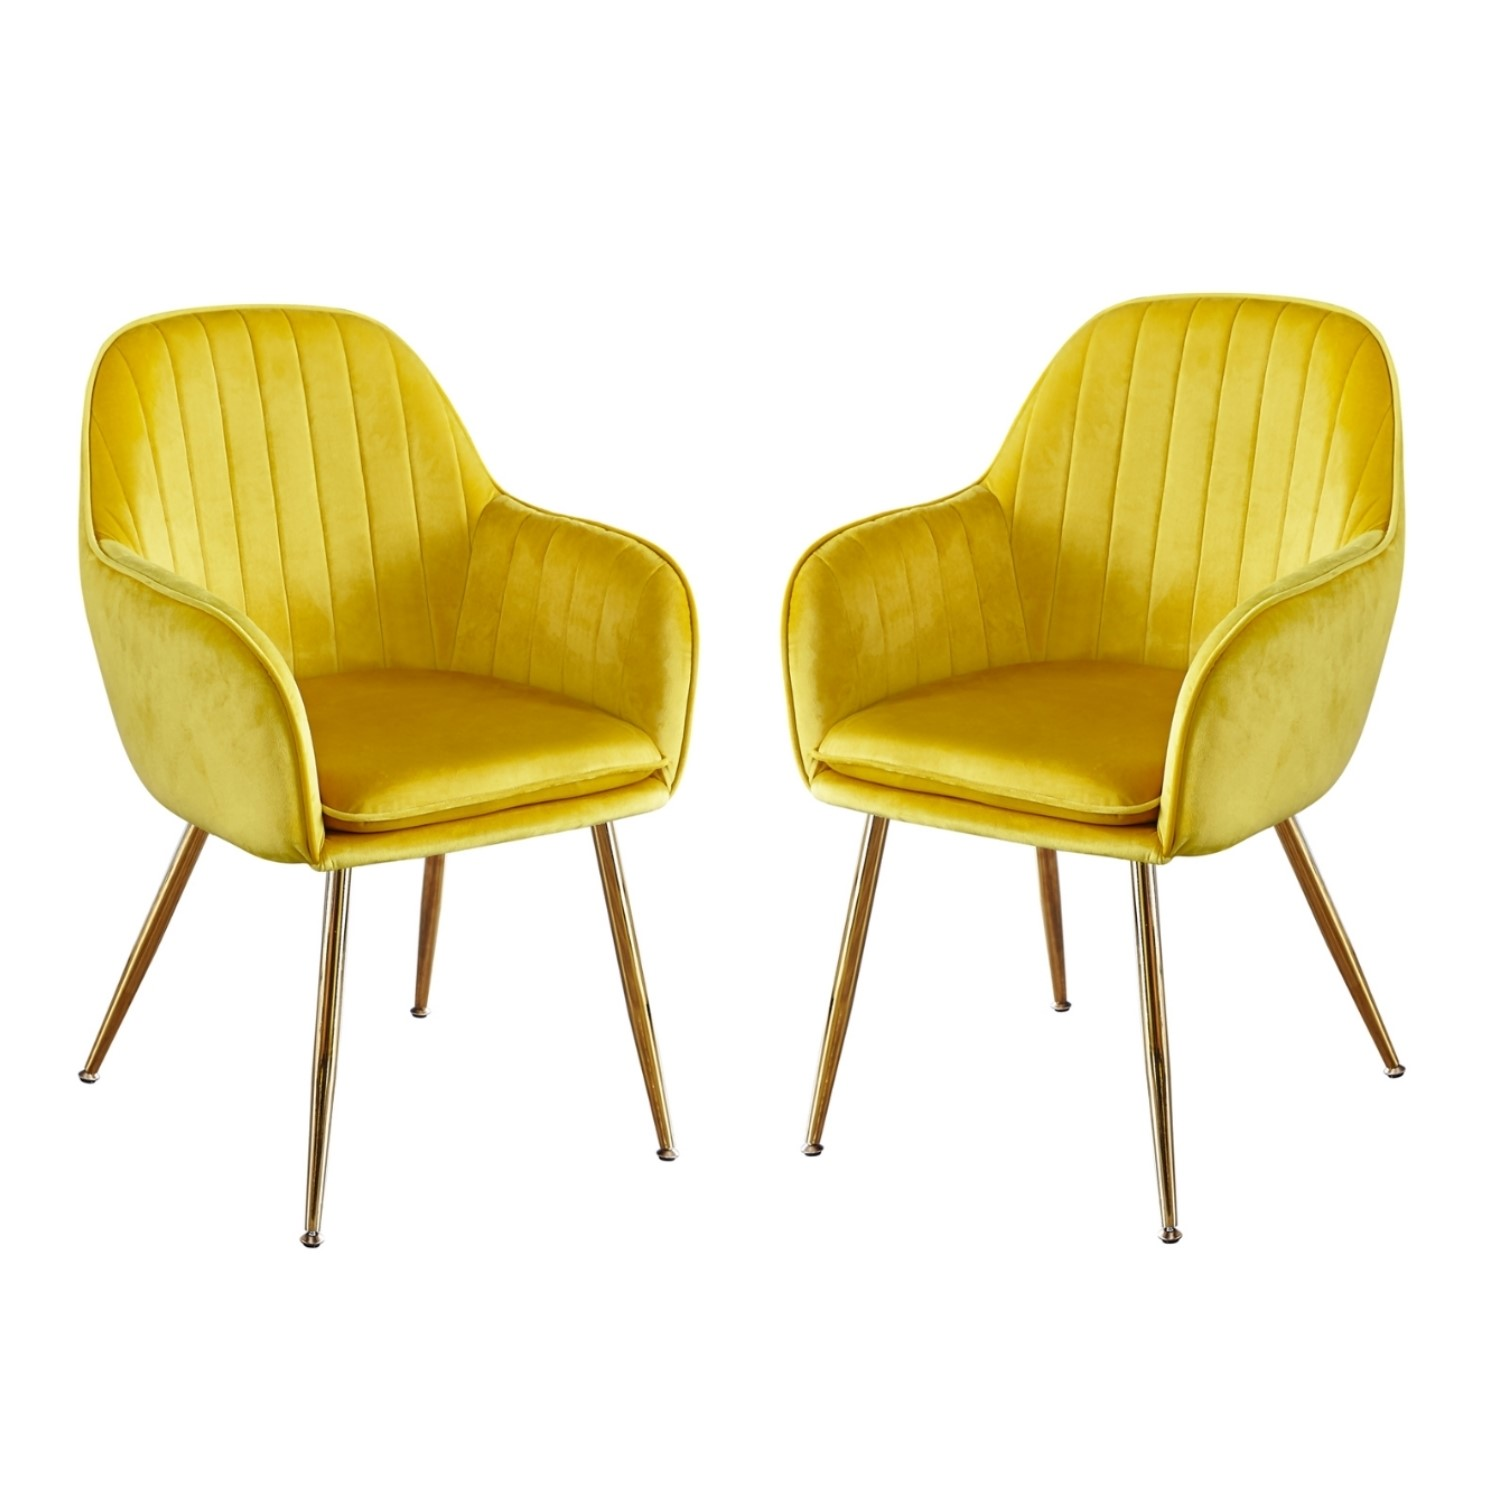 Set Of 2 Yellow Velvet Dining Chairs With Gold Legs Lara Furniture123